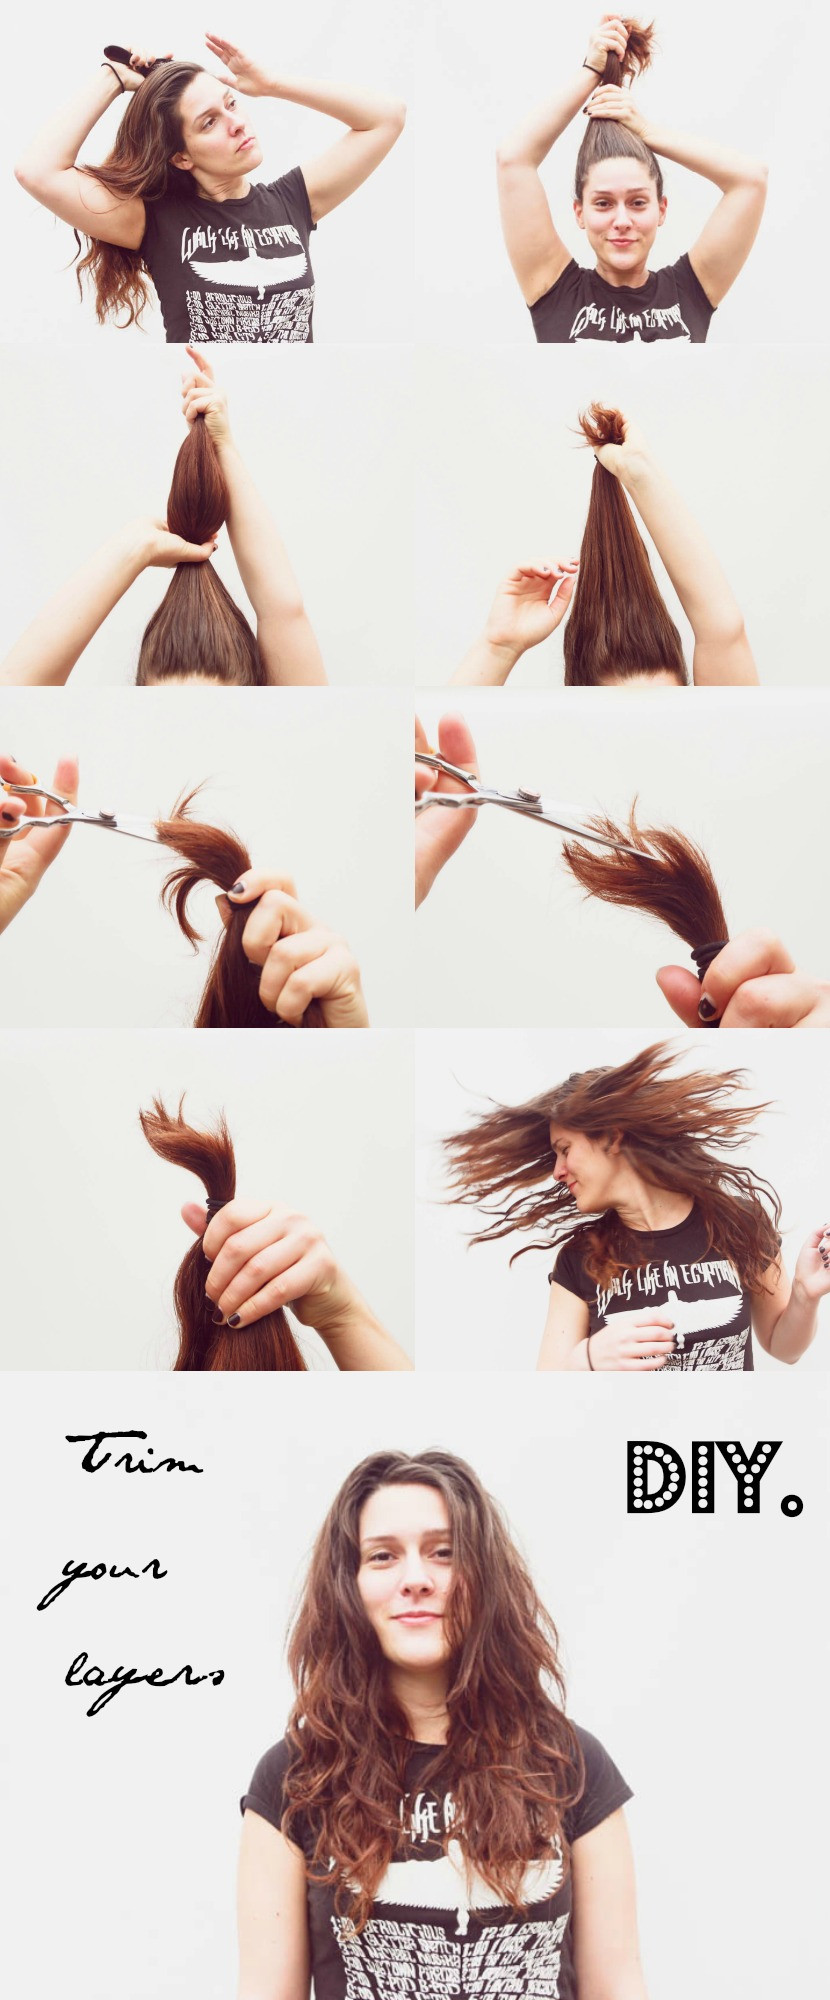 Best ideas about Diy Haircuts For Long Hair . Save or Pin Diy haircuts for long hair Now.